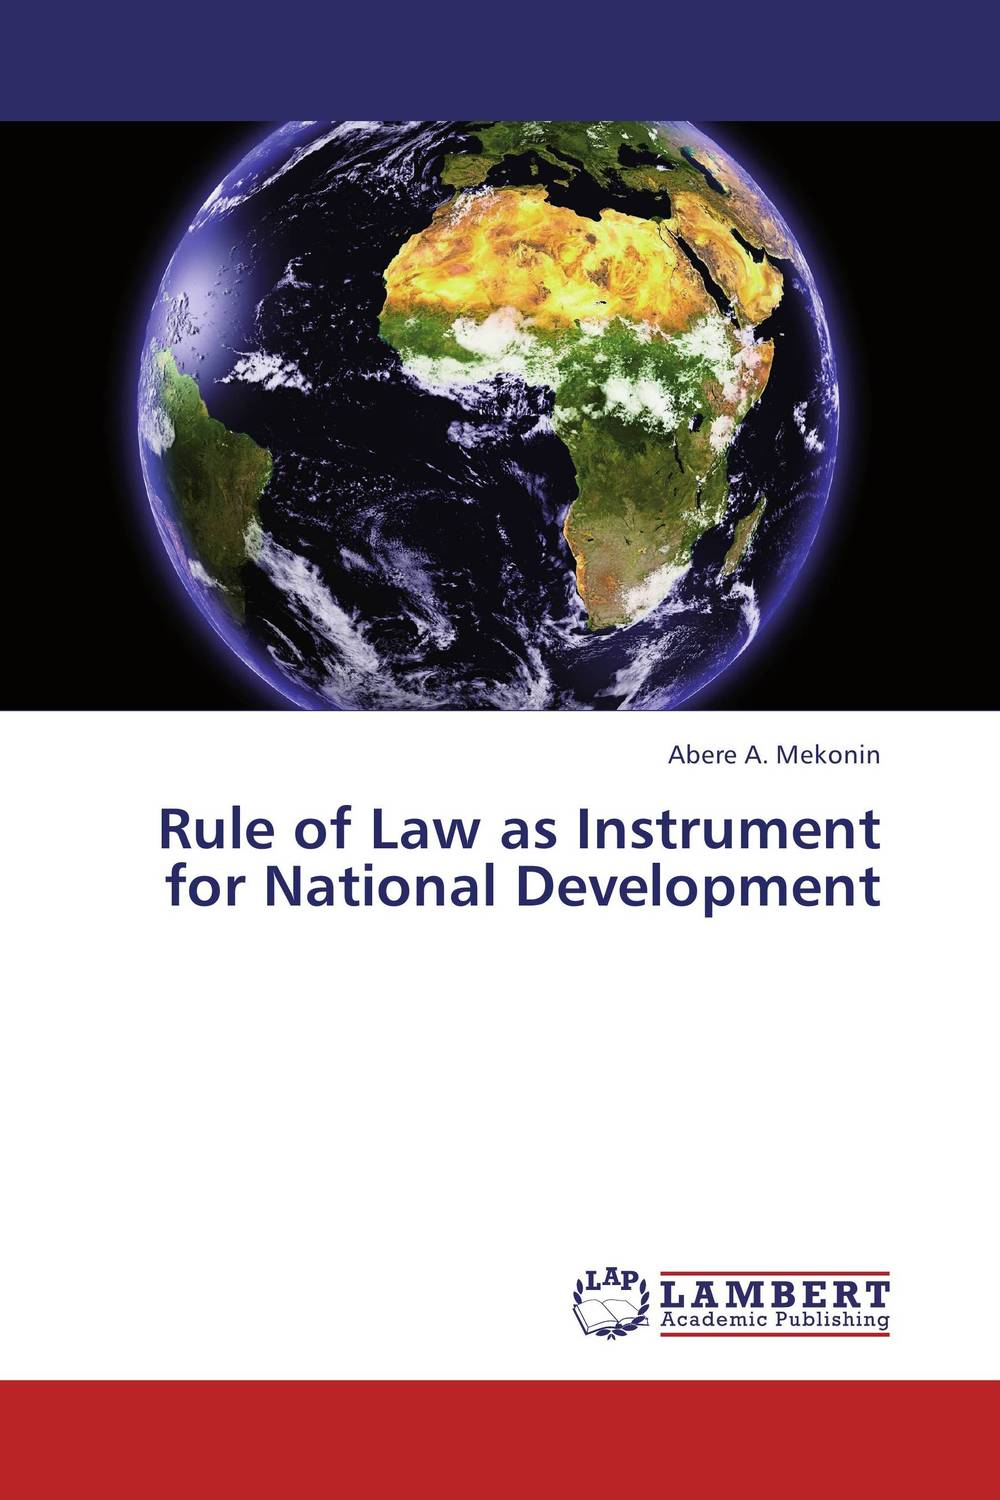 Rule of Law as Instrument for National Development